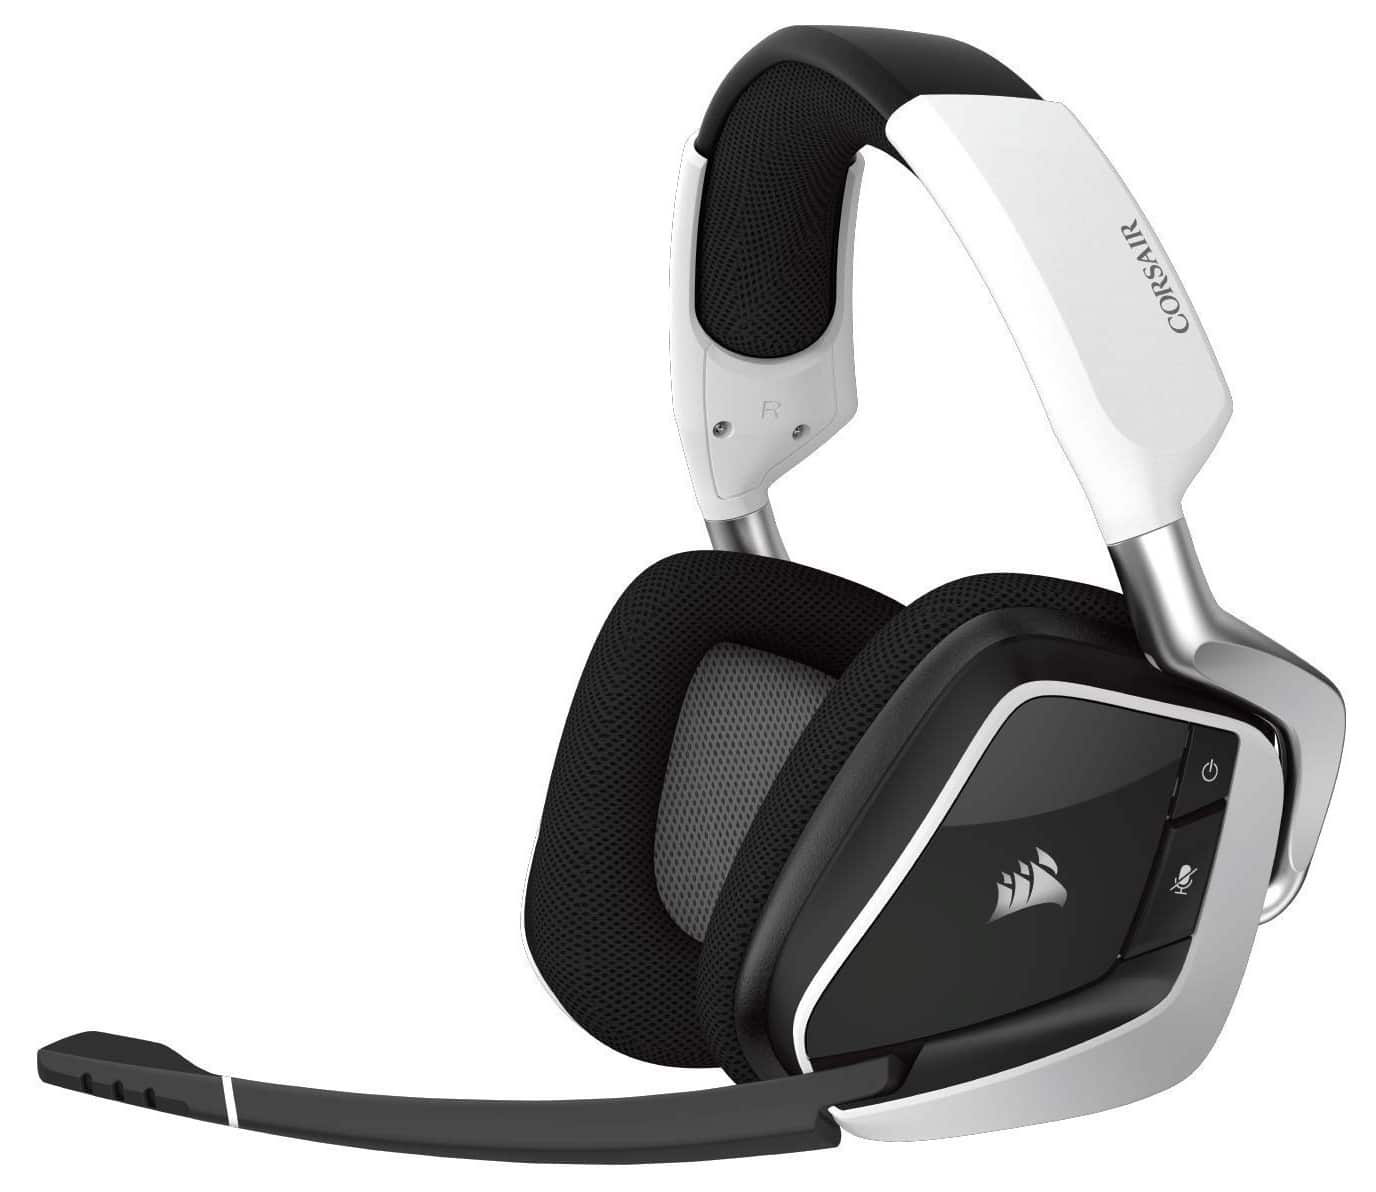 Image 1 : [Promo] Le casque Corsair Void Pro Wireless à 91 €